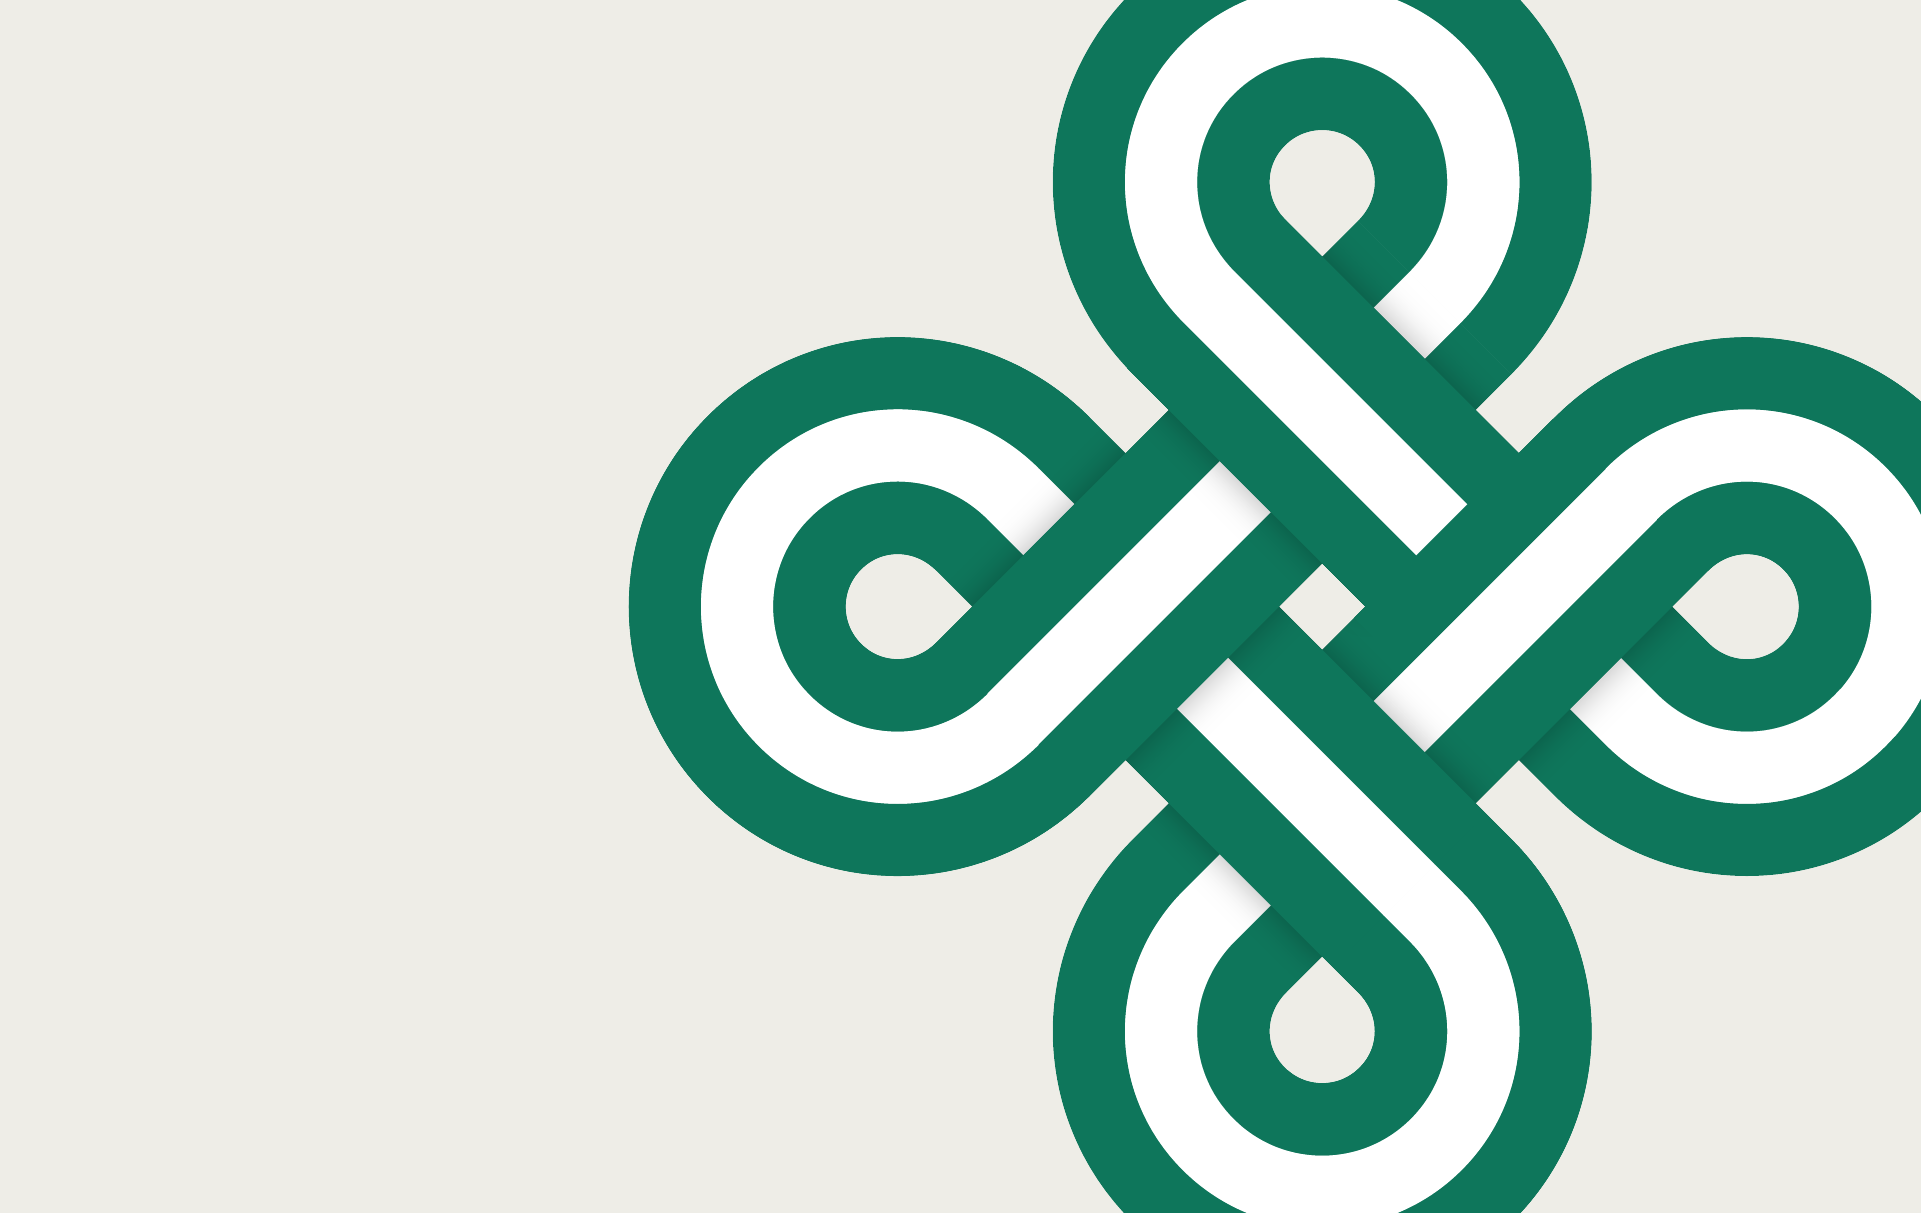 Clickable graphic for St. Patrick's Day parade guide. A swirl of green, resembling a clover.